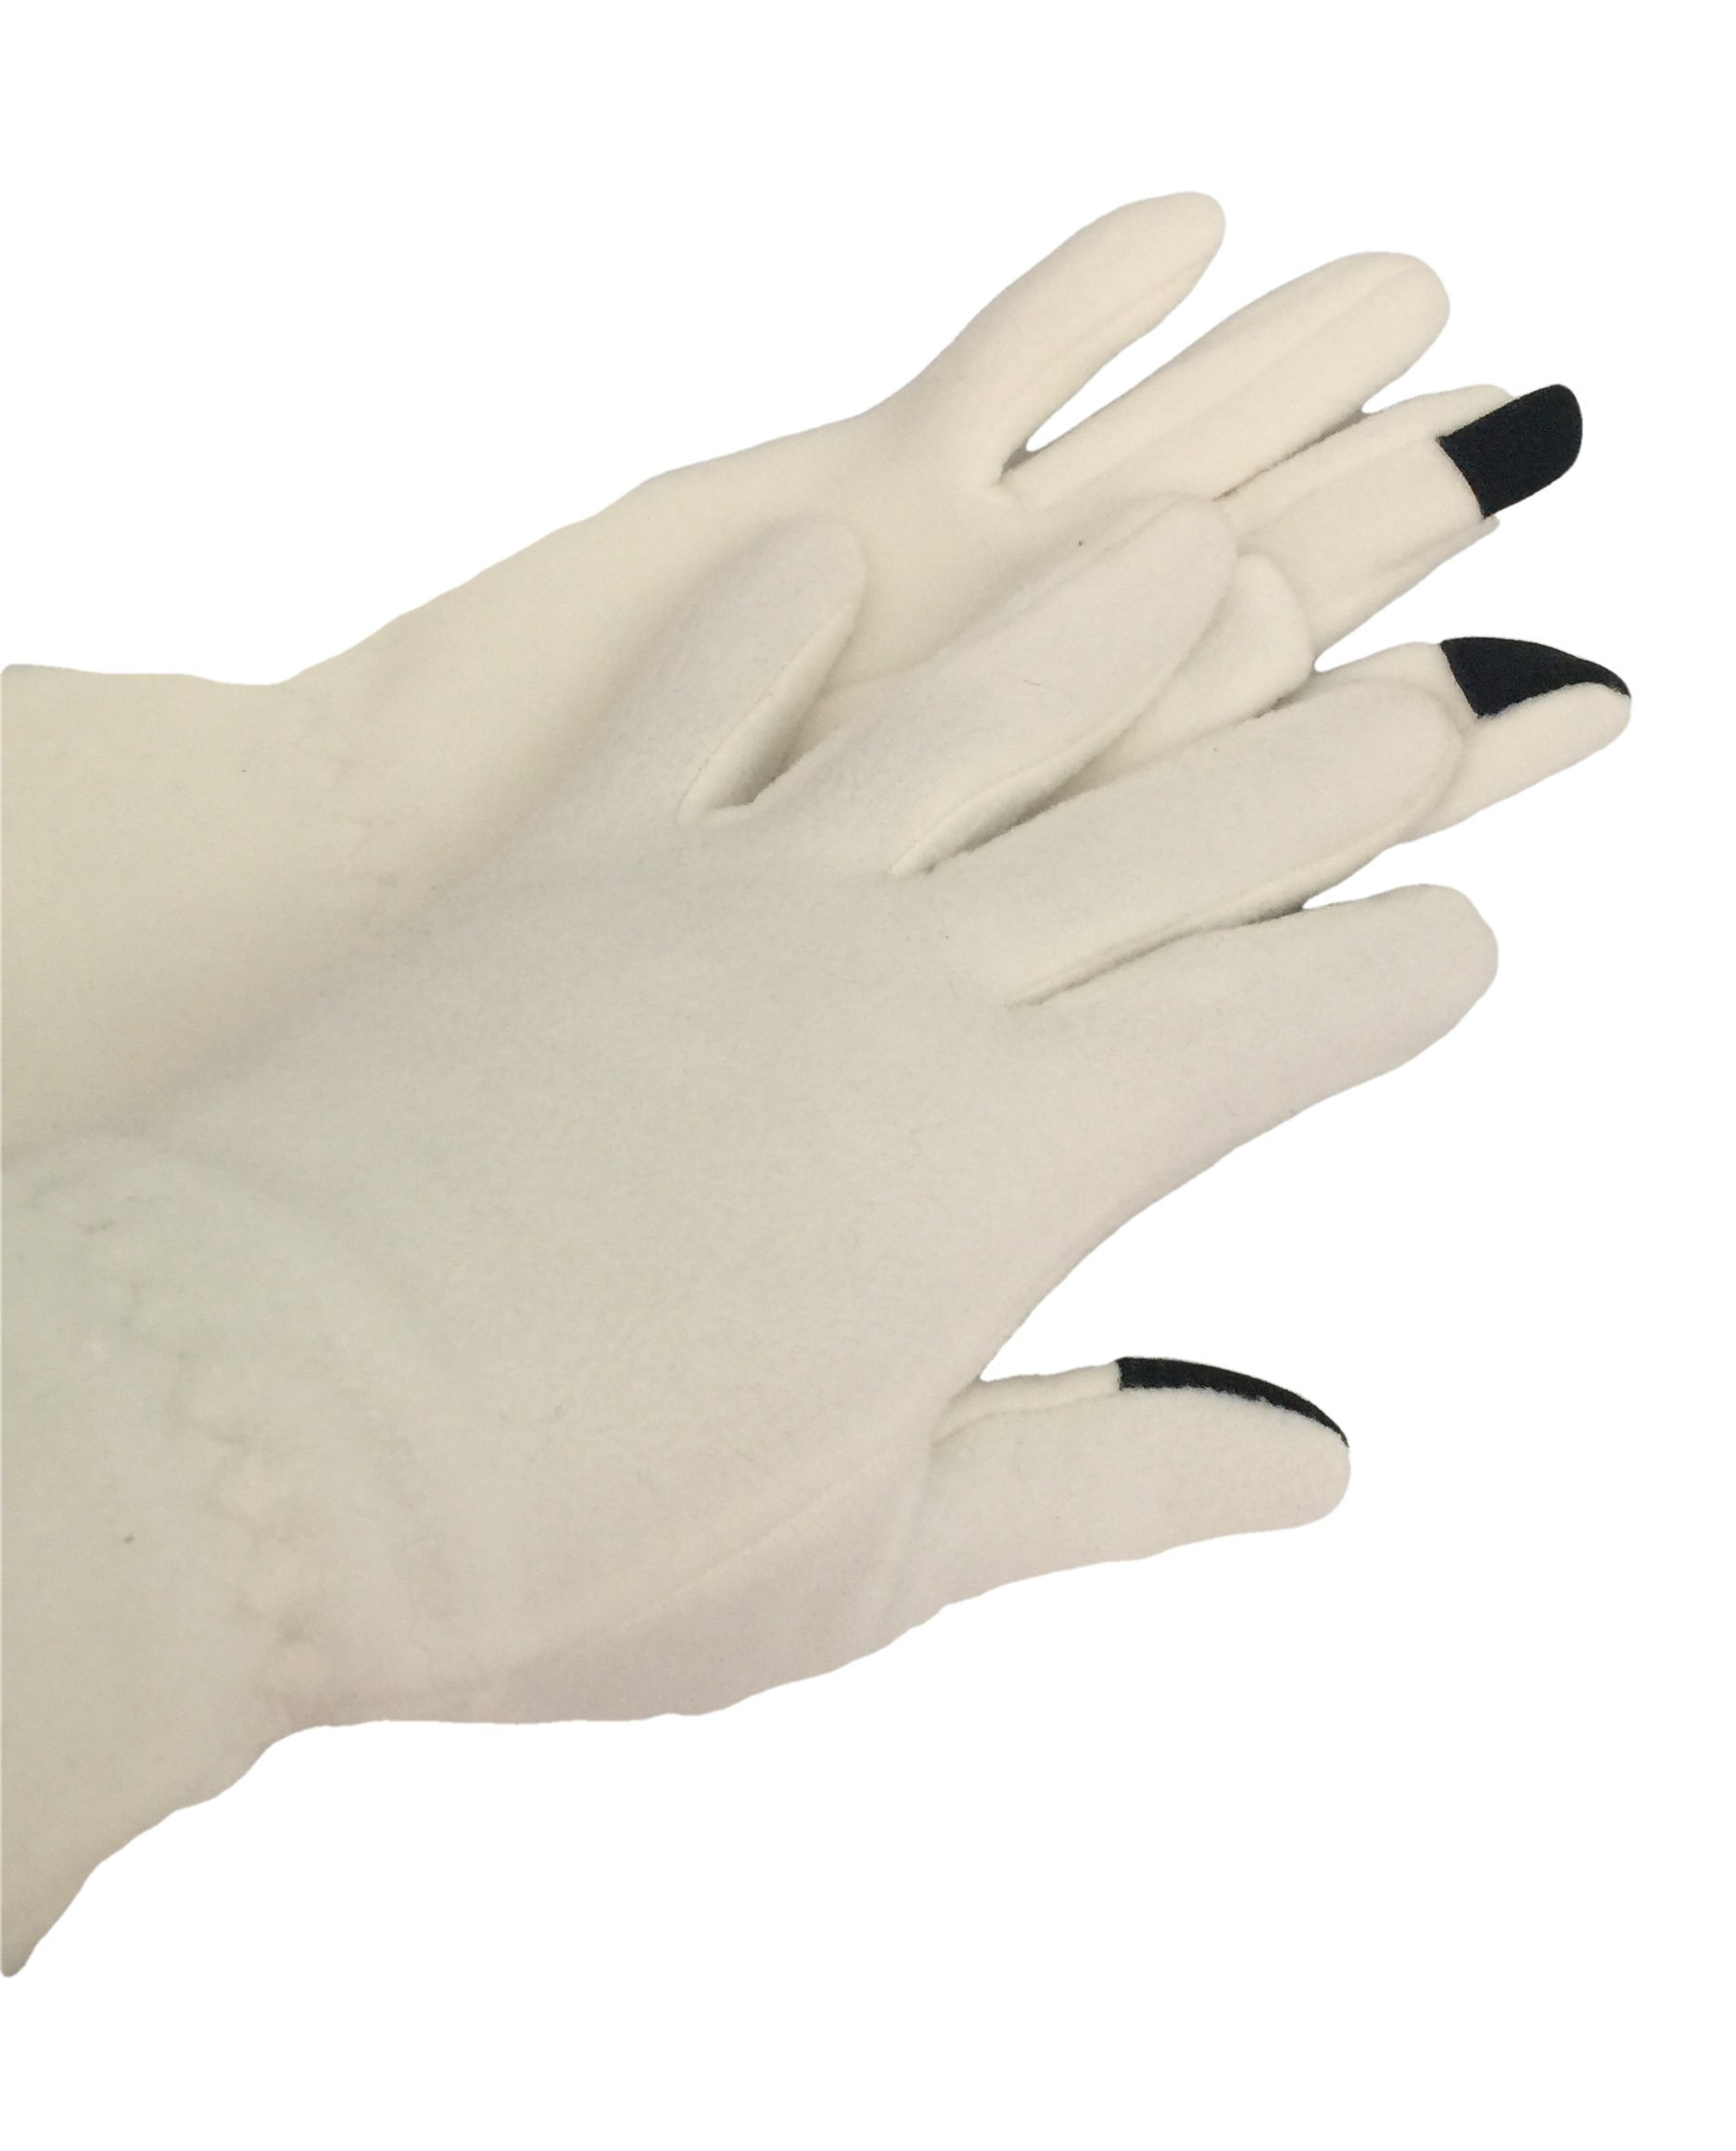 Touch Screen Compatible Women's Fleece Smart Phone Texting Gloves (Off-white)